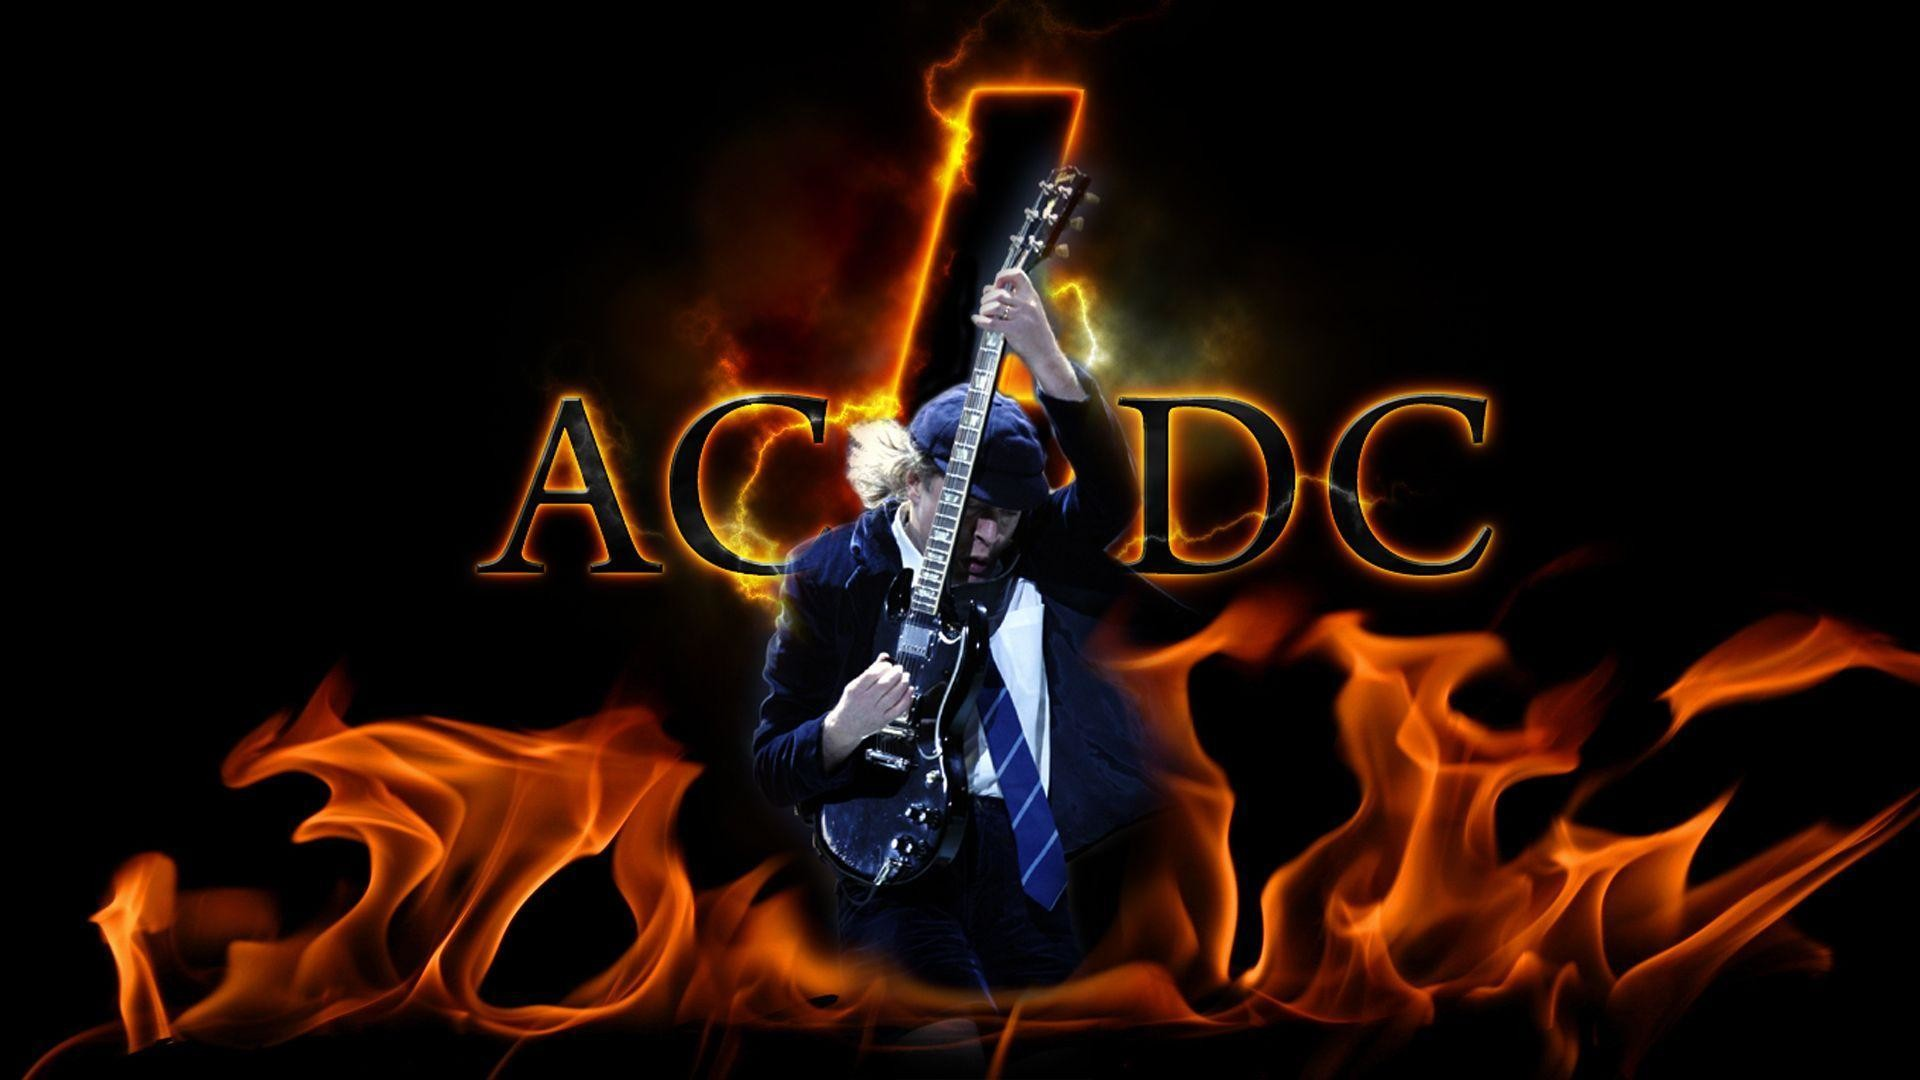 AC DC Wallpaper HD – WallpaperSafari